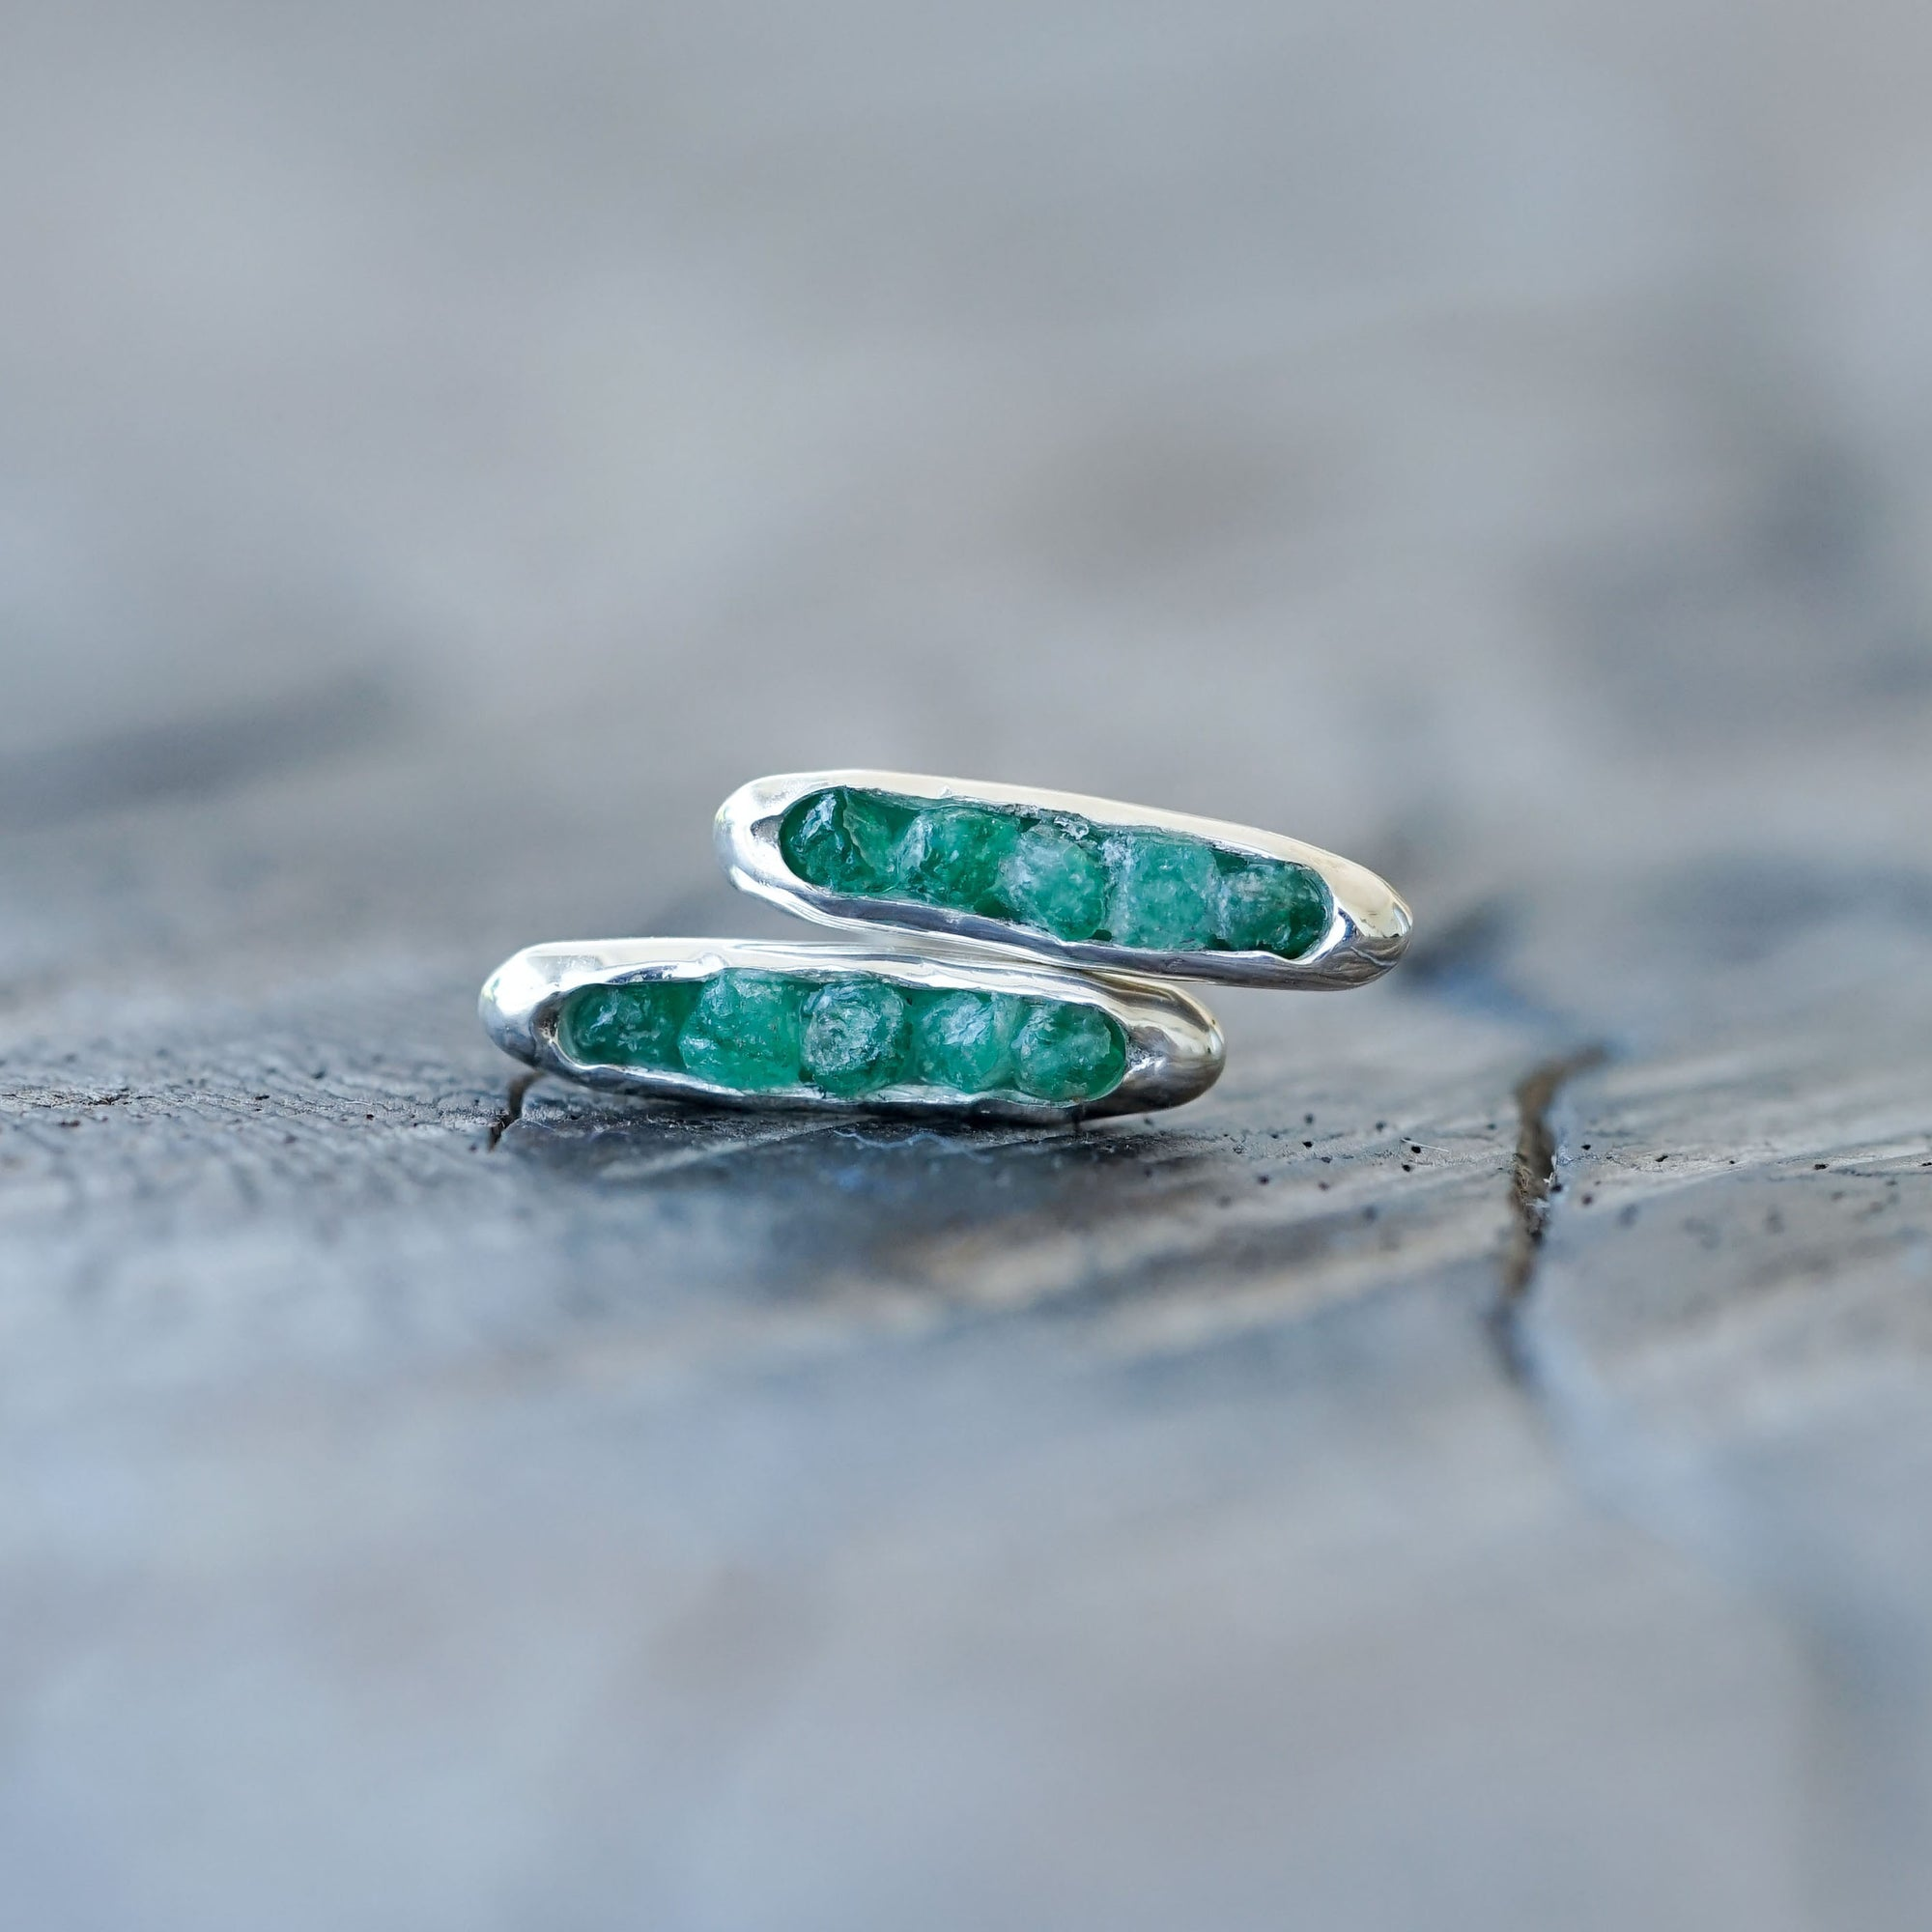 Rough Emerald Earrings with Hidden Gems